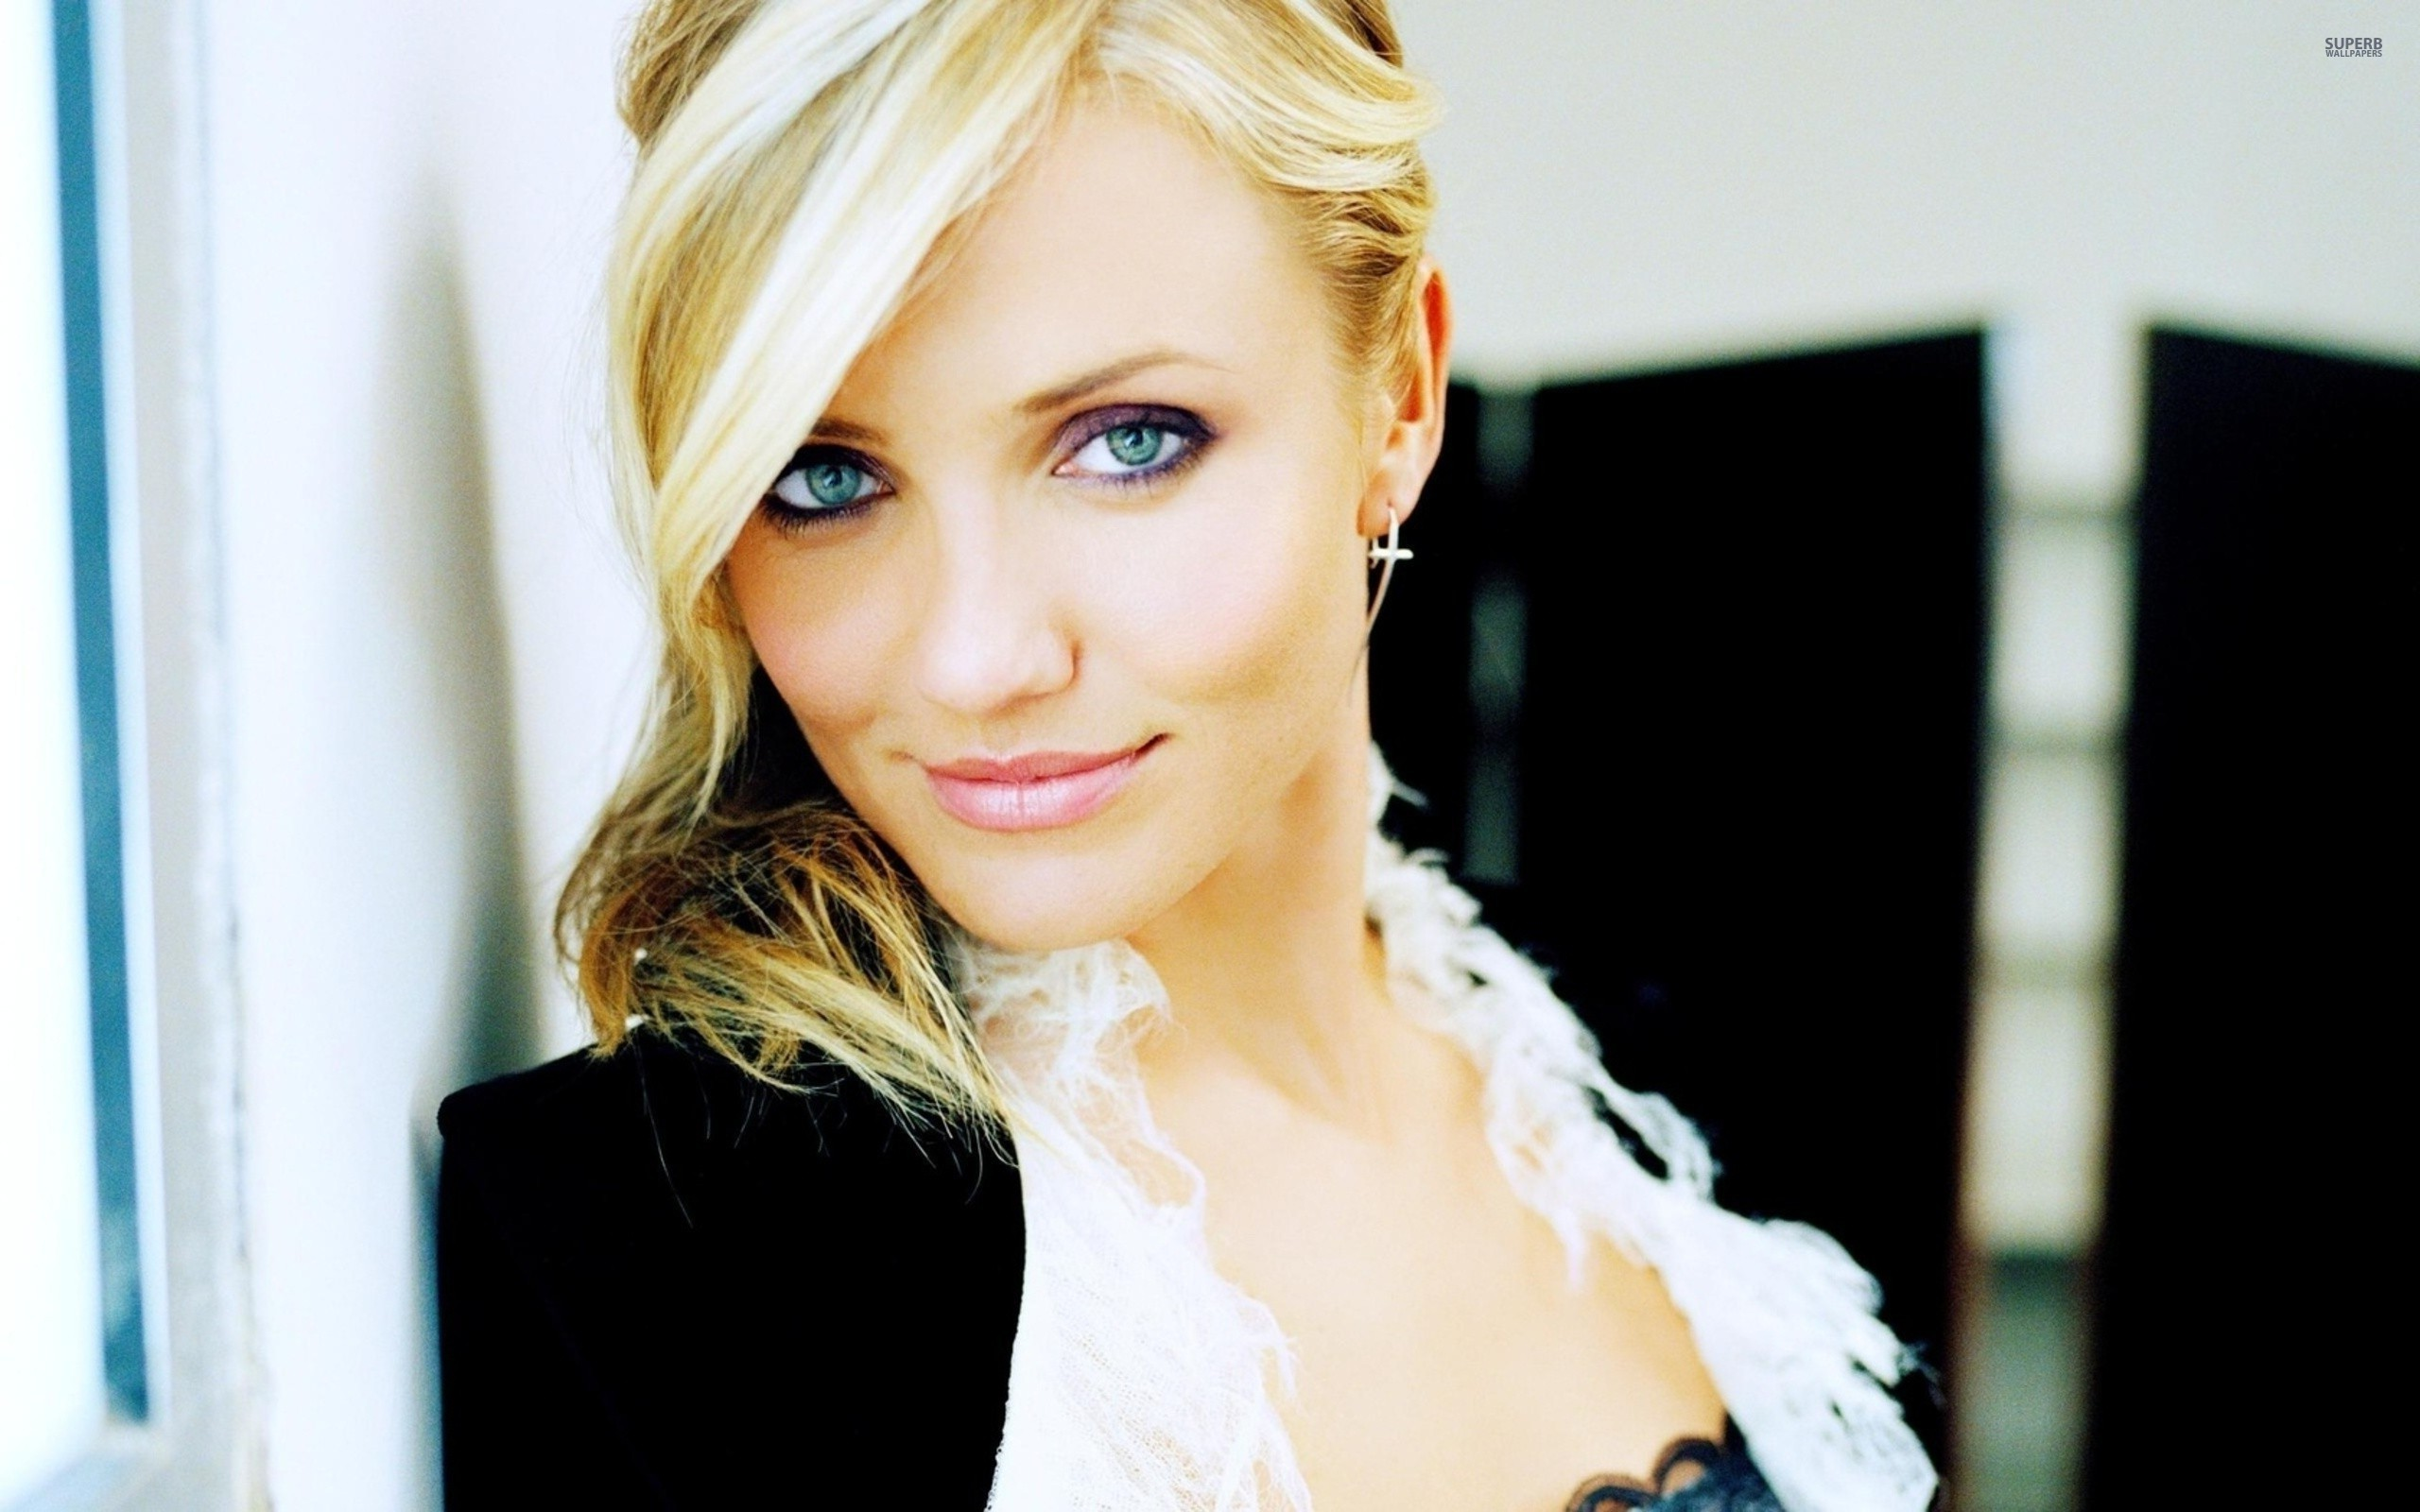 Cameron Diaz wallpaper 2560×1600 Wallpaper